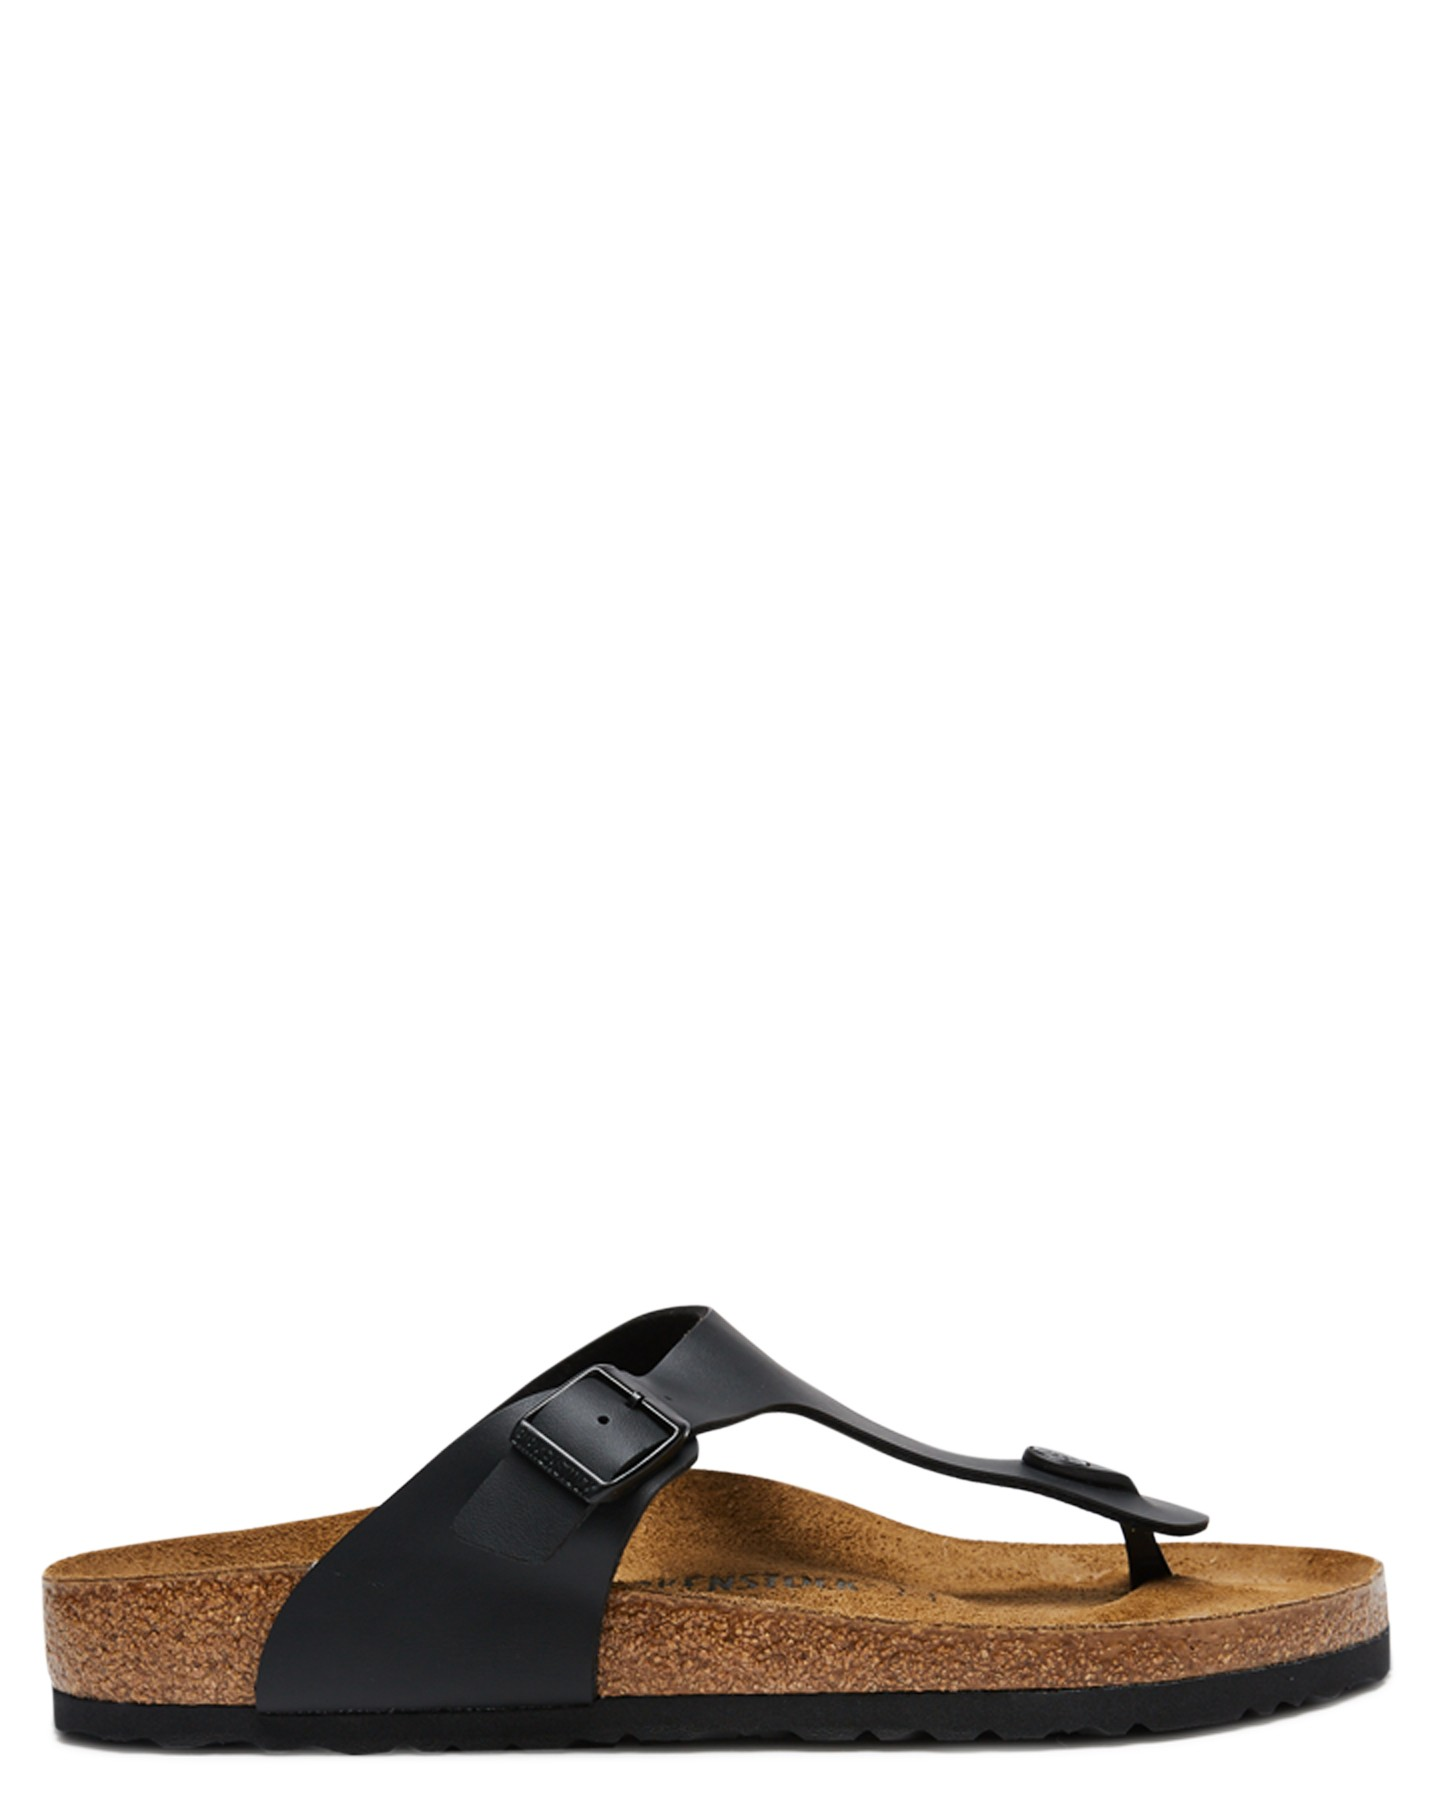 Birkenstock Birko-flor Suede Leather Black Lightweight Mens Thongs